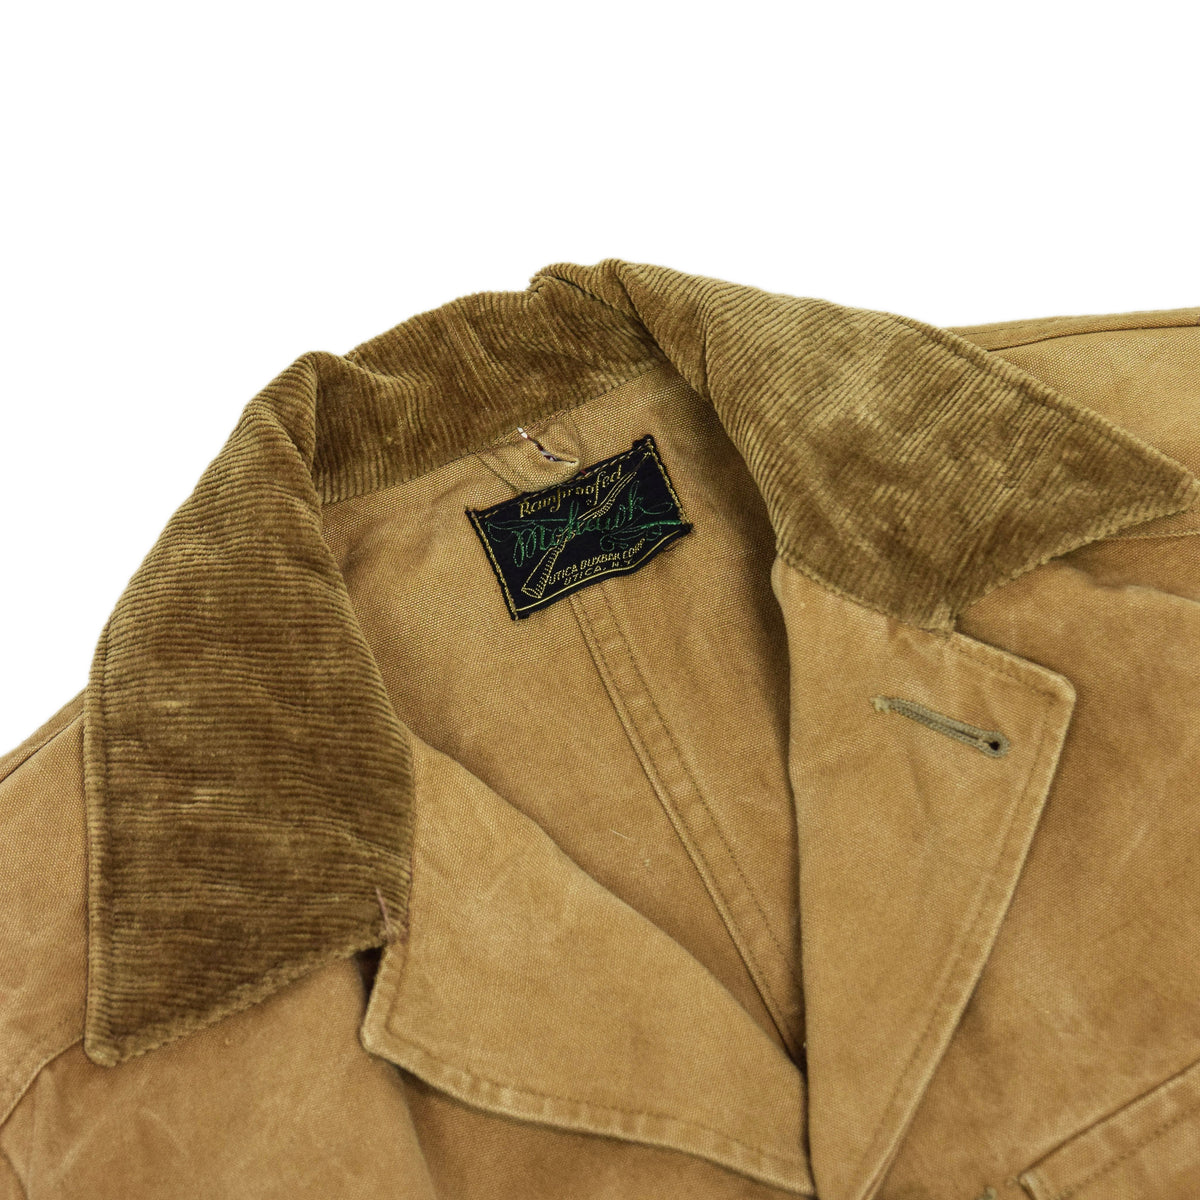 Vintage 1930s Mohawk Duxbak NY Hunting Tan Canvas Shooting Field Jacket S / M BRANDED PATCH